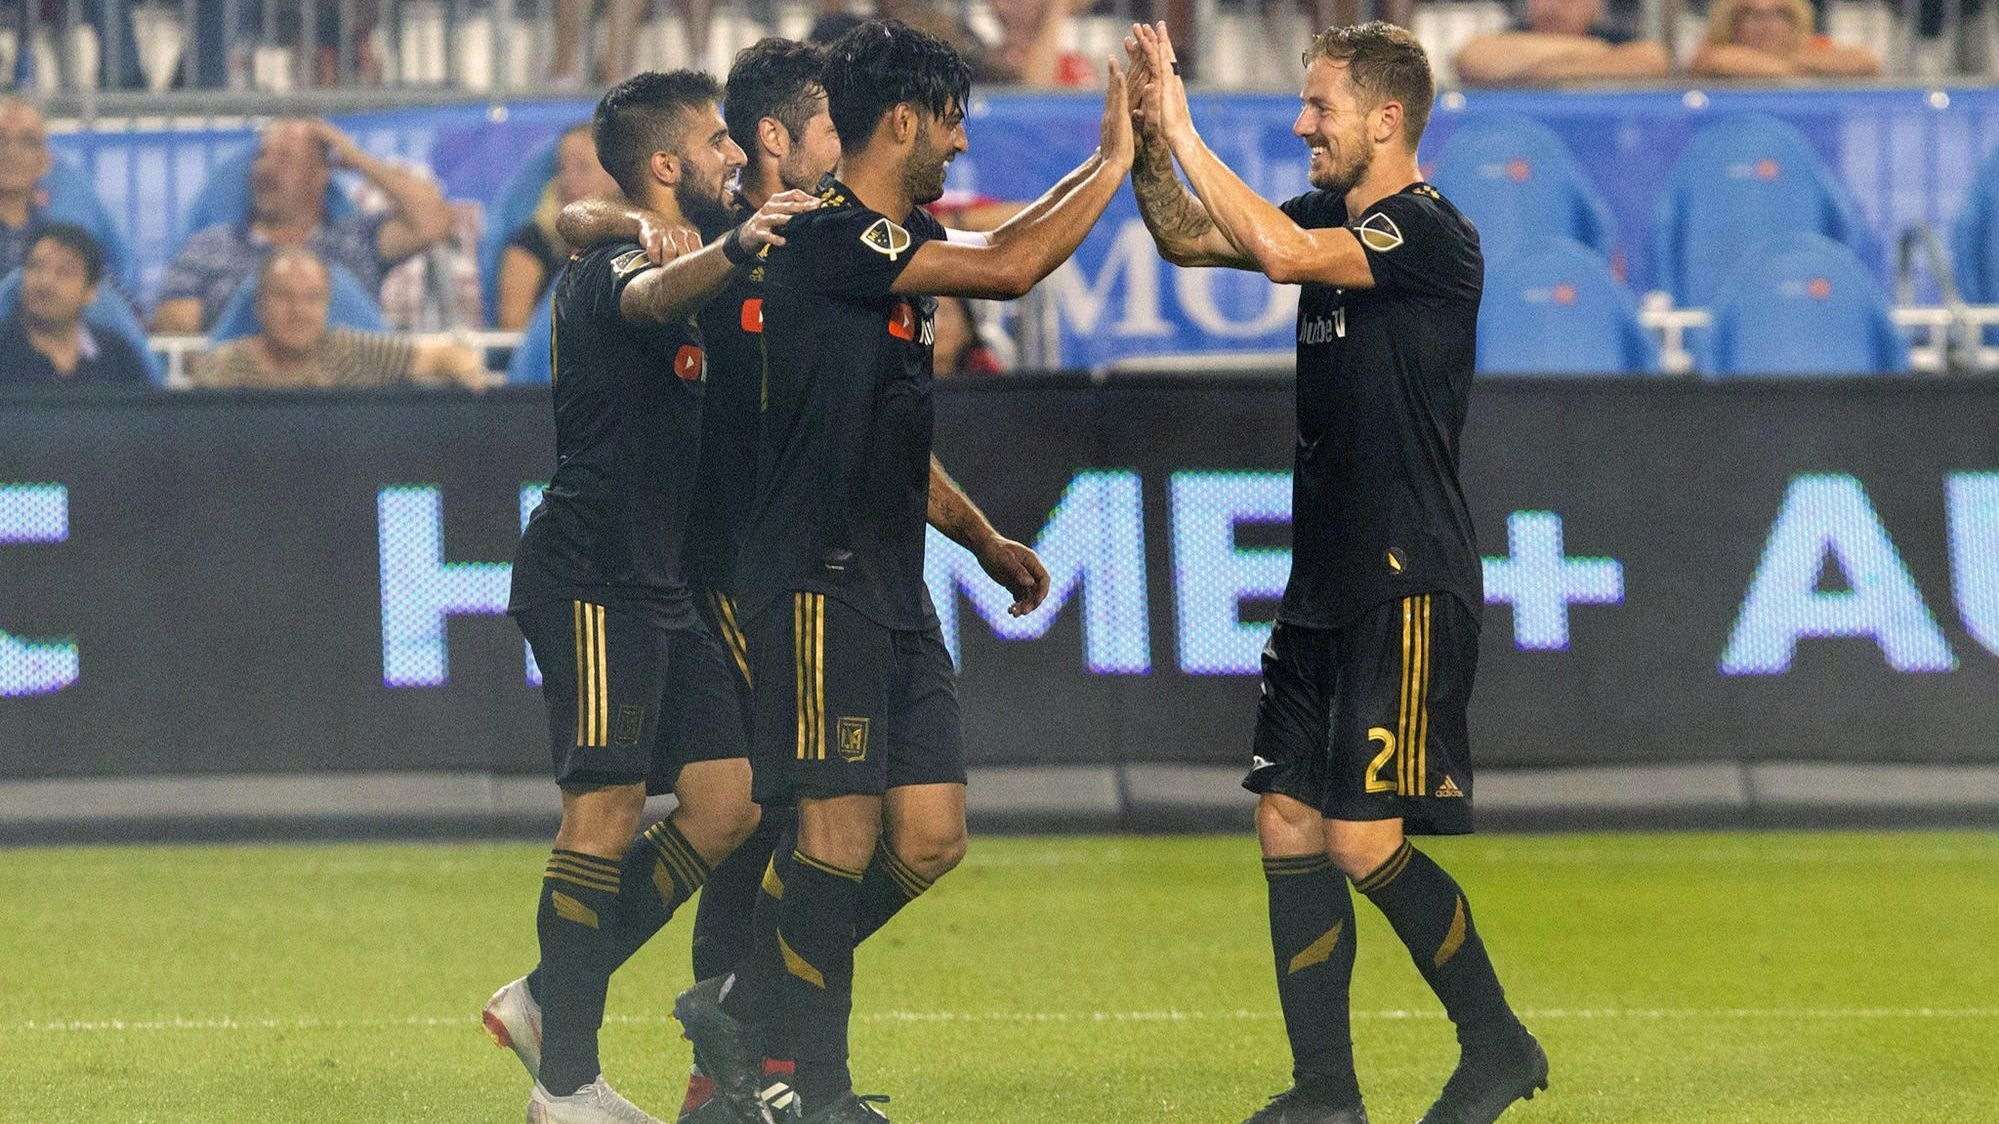 For LAFC, replacing Benny Feilhaber will require a team effort